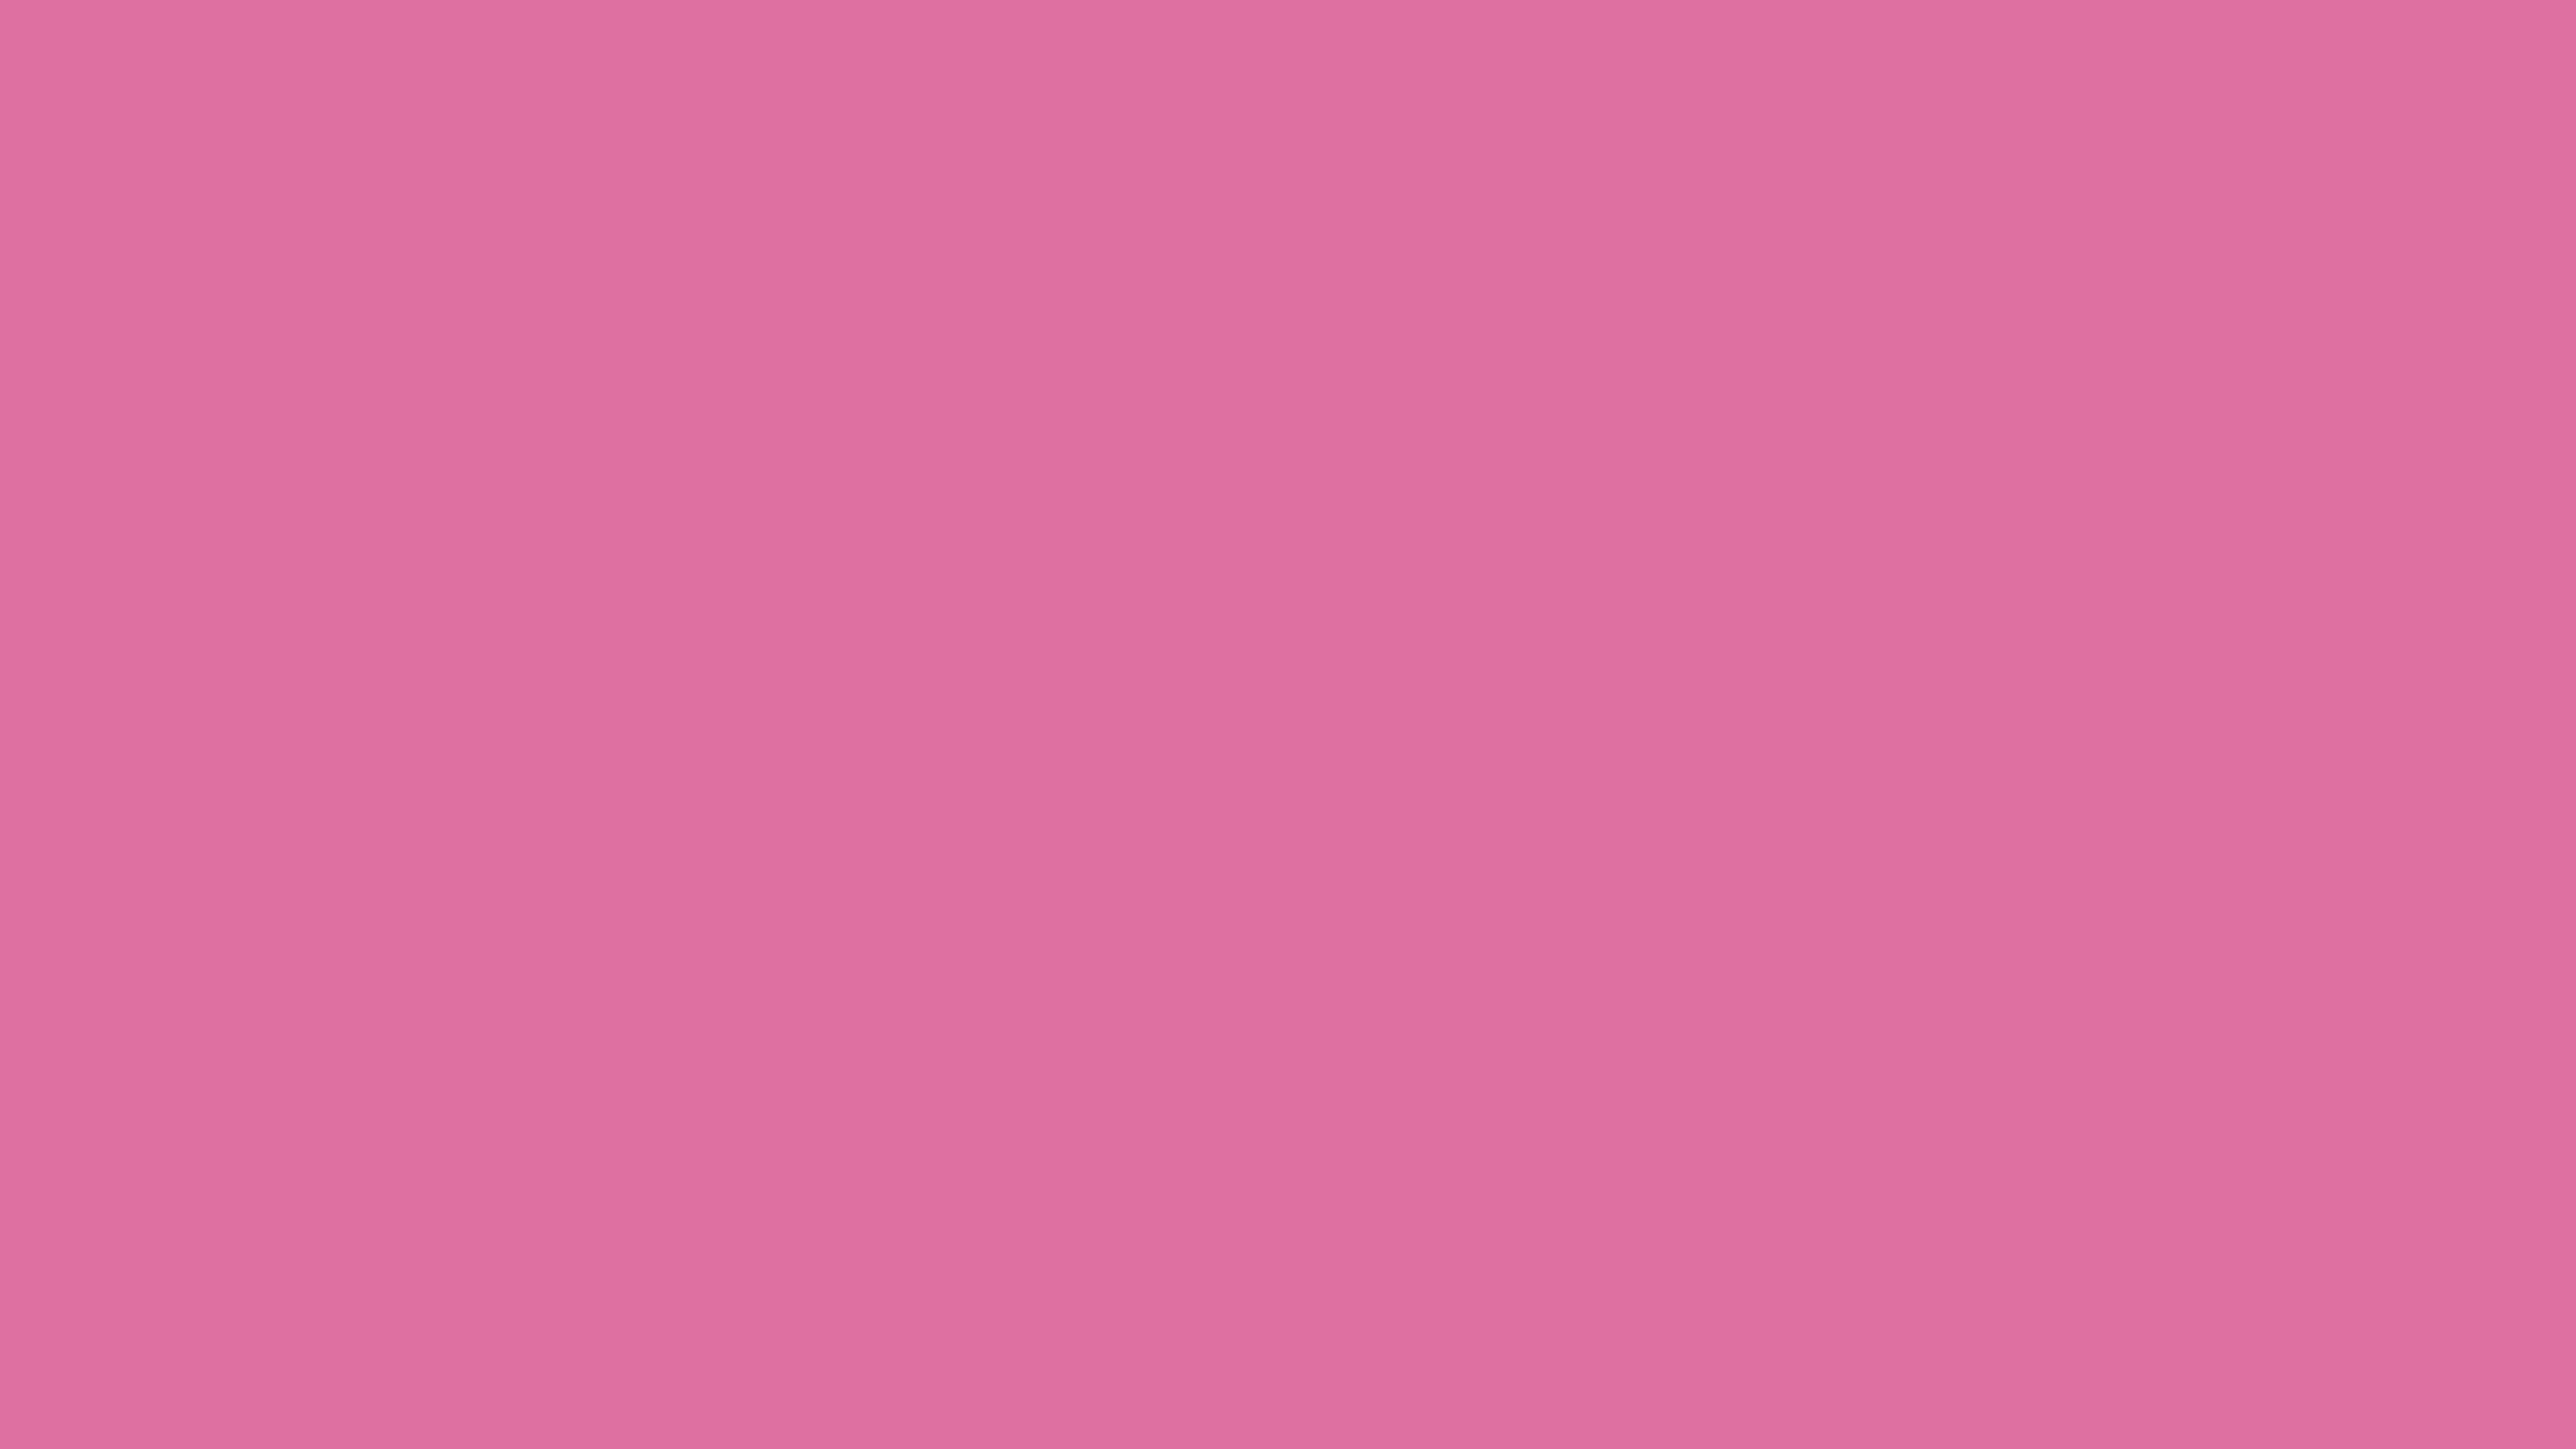 5120x2880 China Pink Solid Color Background